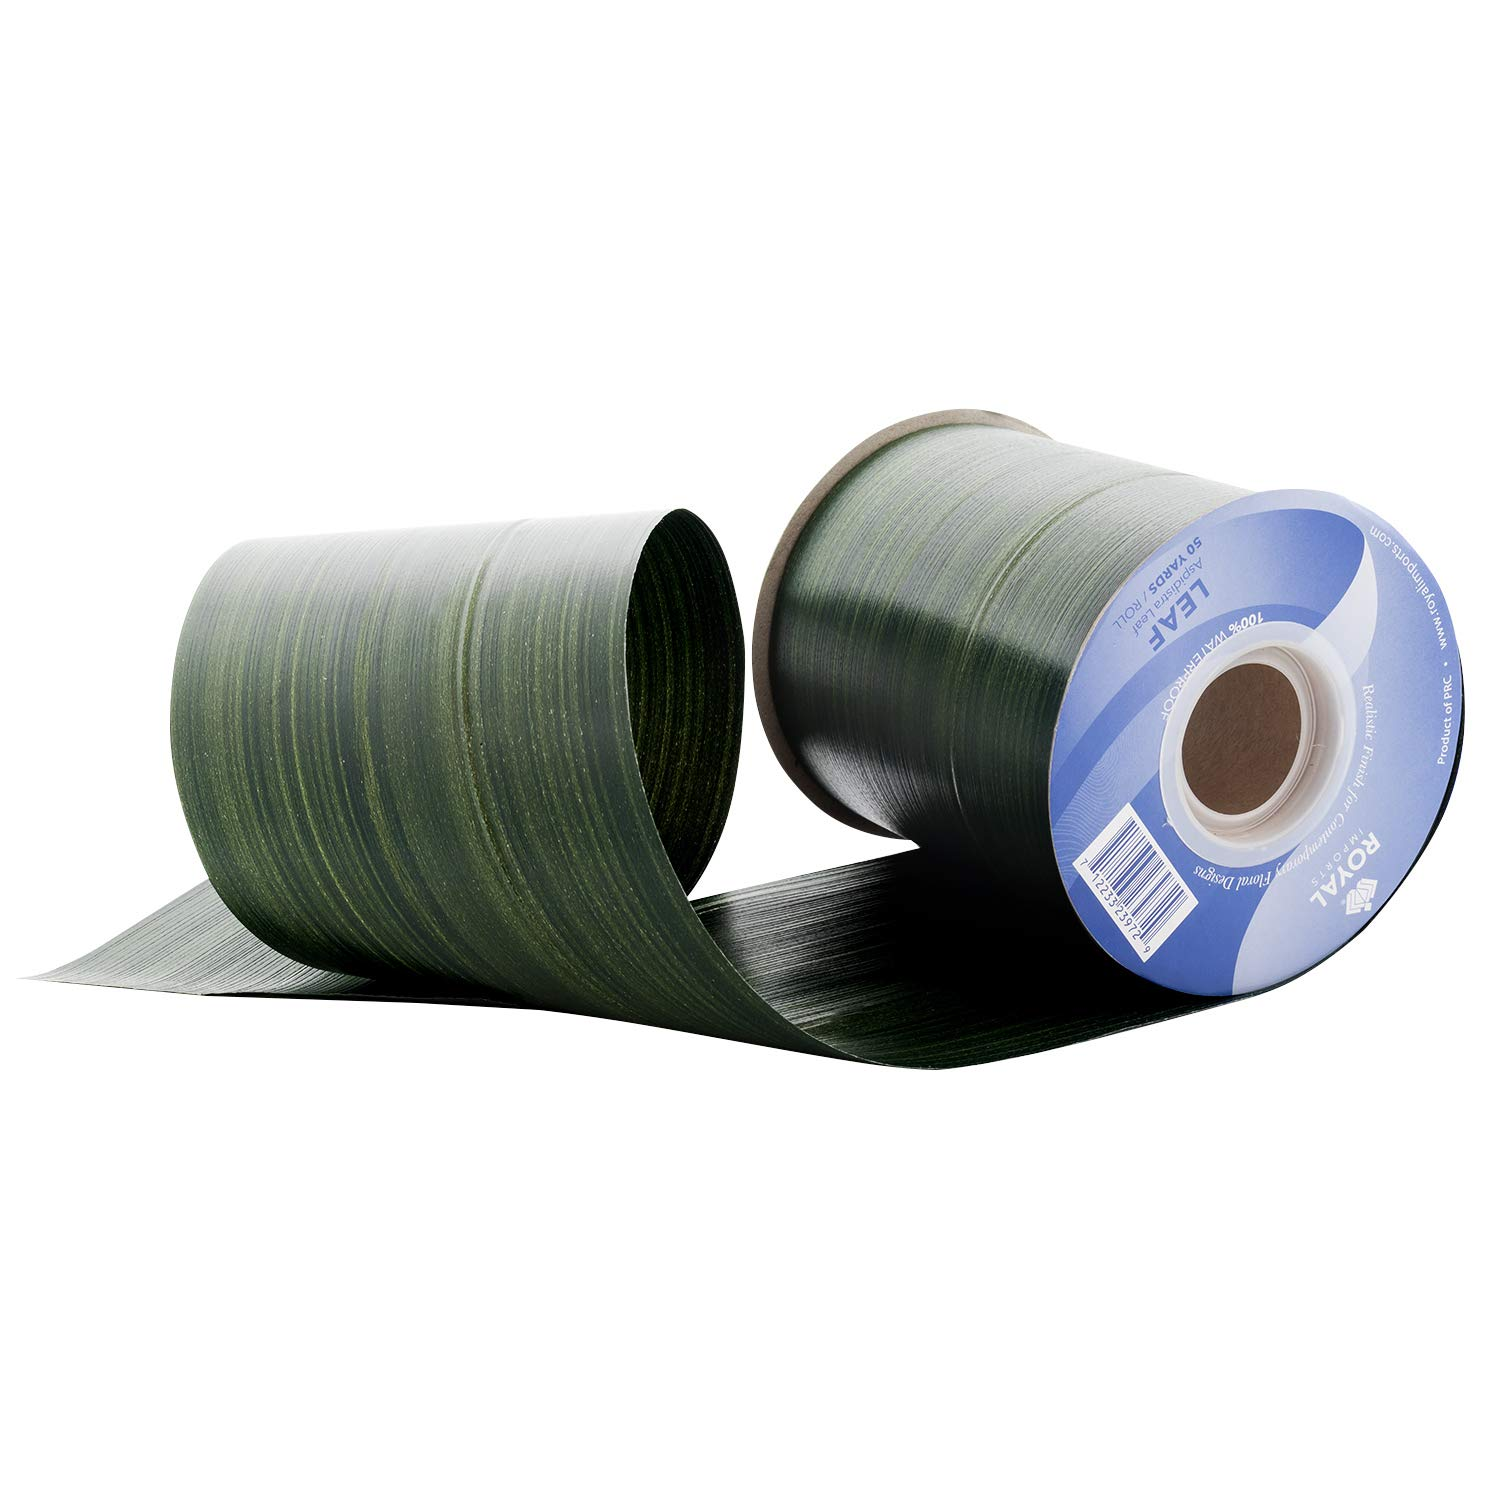 Green Aspidistra Ti Leaf Pattern Poly Satin Waterproof Ribbon 4'' (#100) Floral & Craft Decoration, 50 Yard Roll (150 FT Spool) Bulk, by Royal Imports by Royal Imports (Image #1)